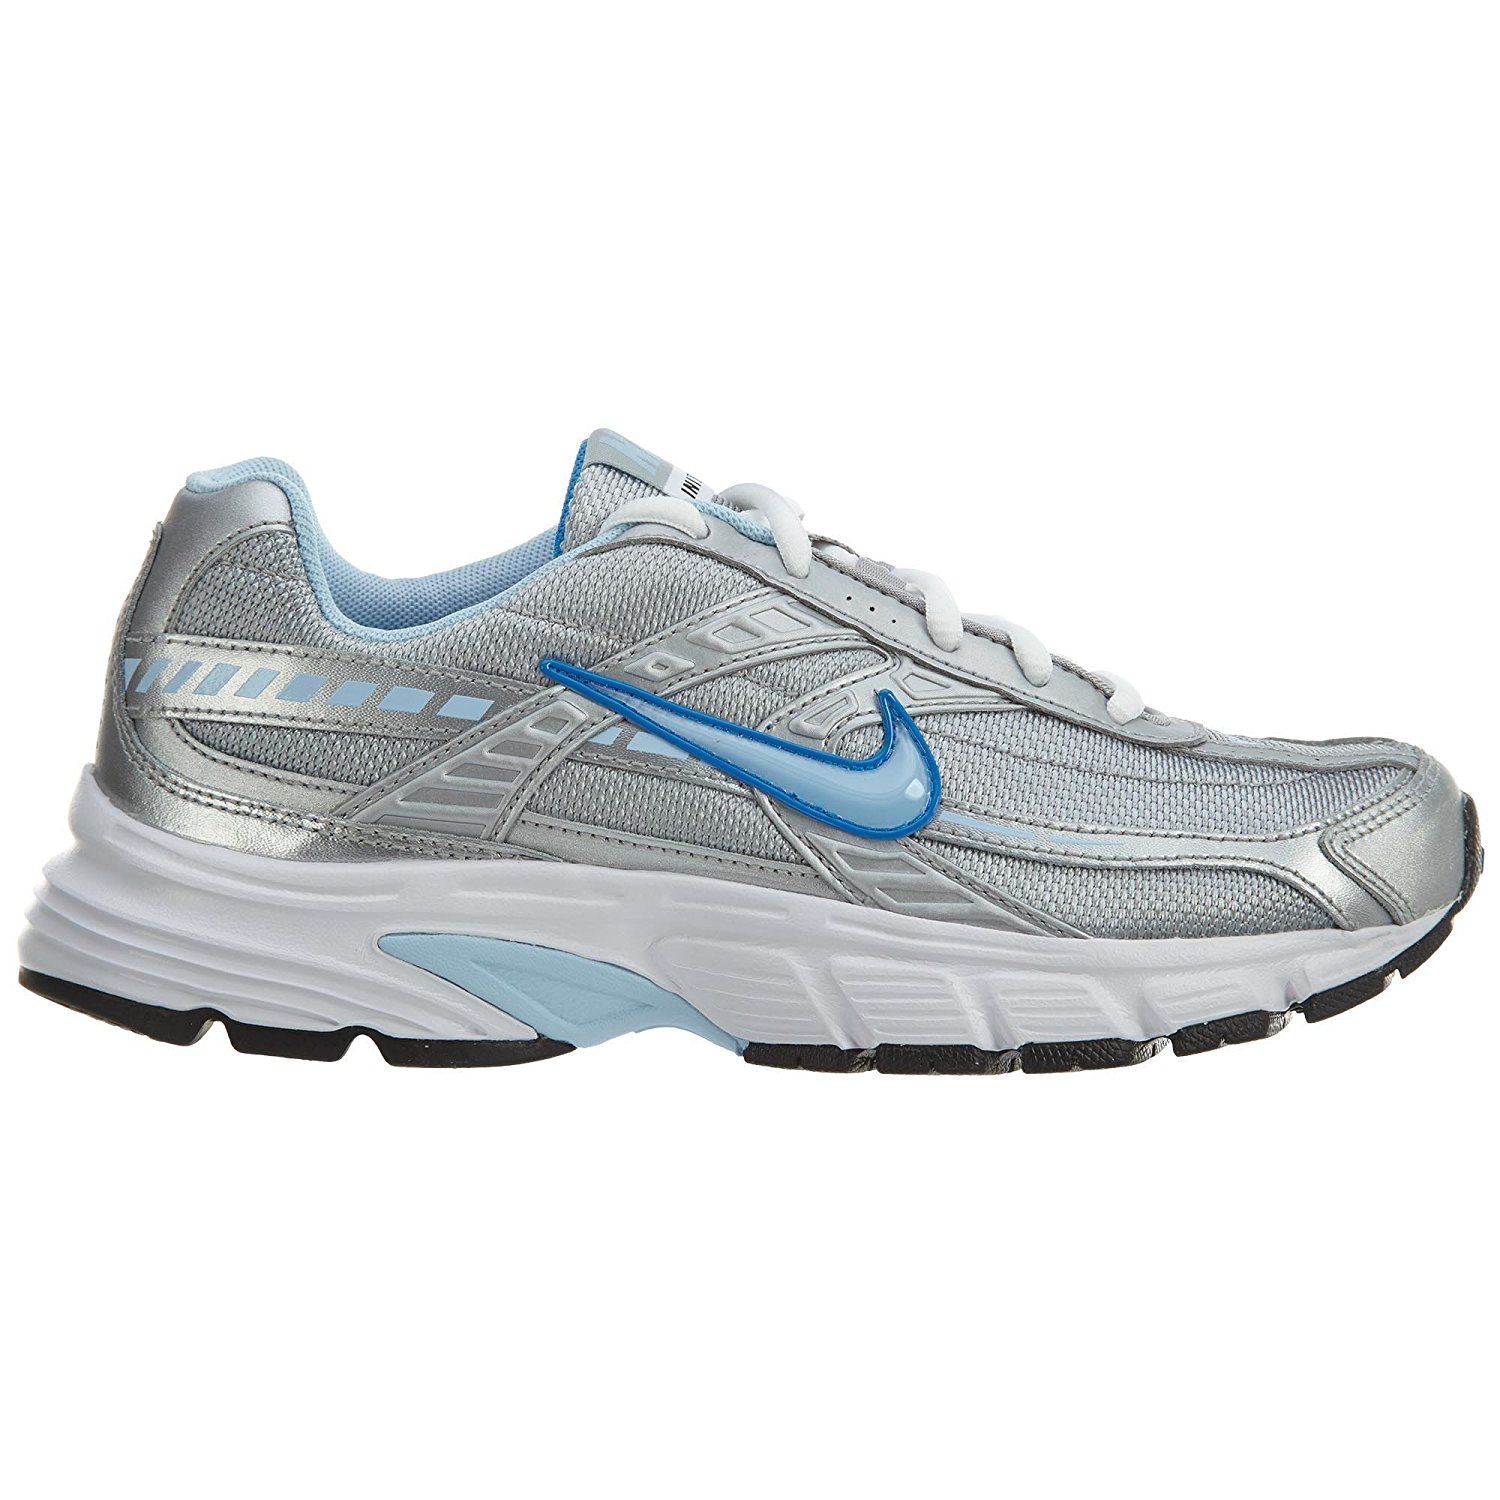 Nike Womens Nike Initiator Style: 394053-001 Low Top Lace...